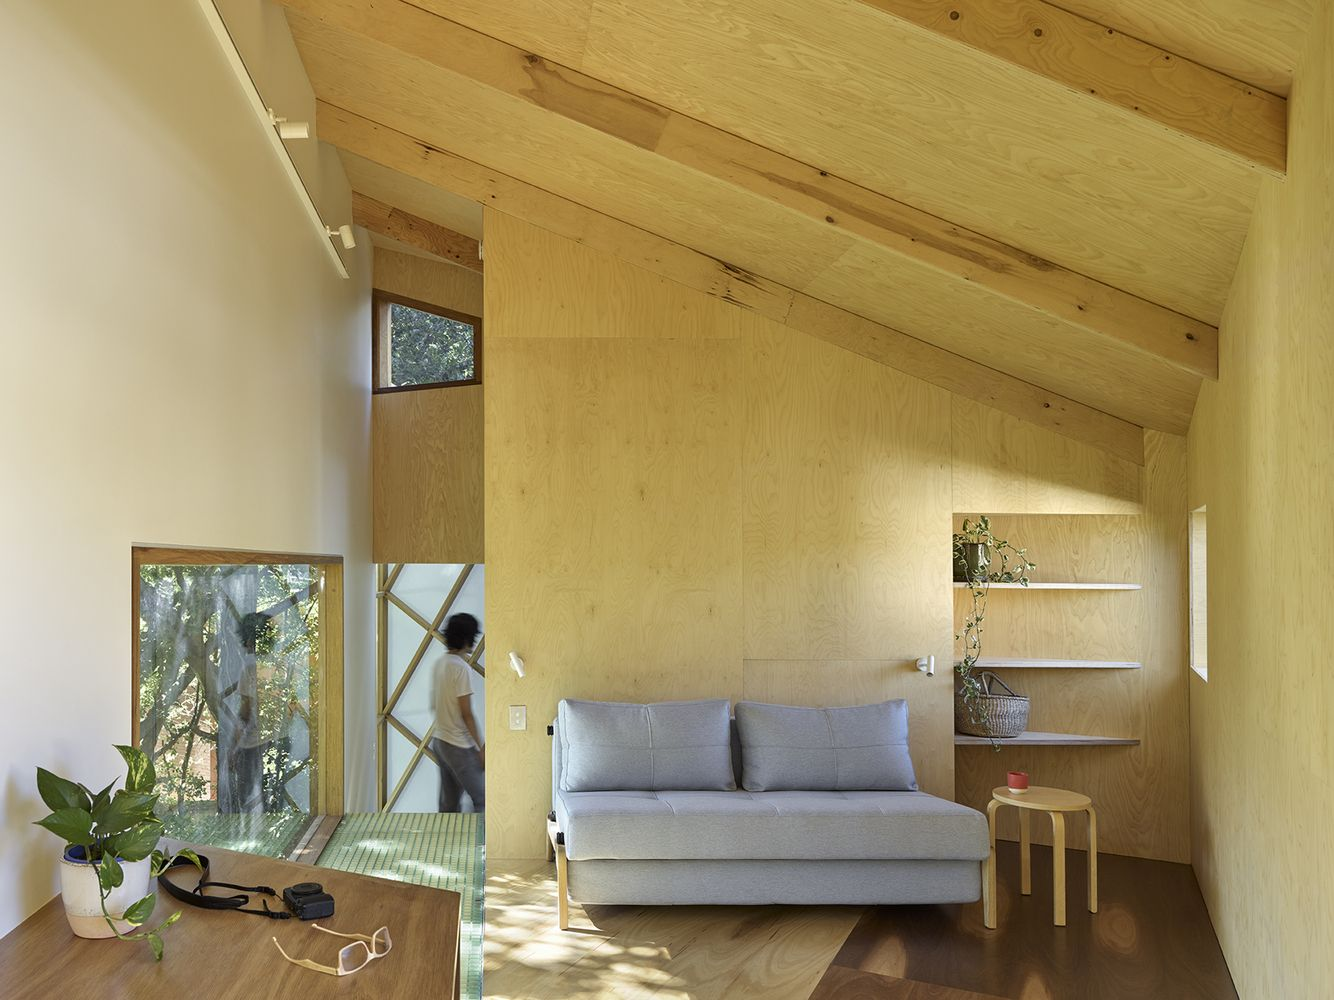 The interior is very simple, reminiscent of a child's treehouse